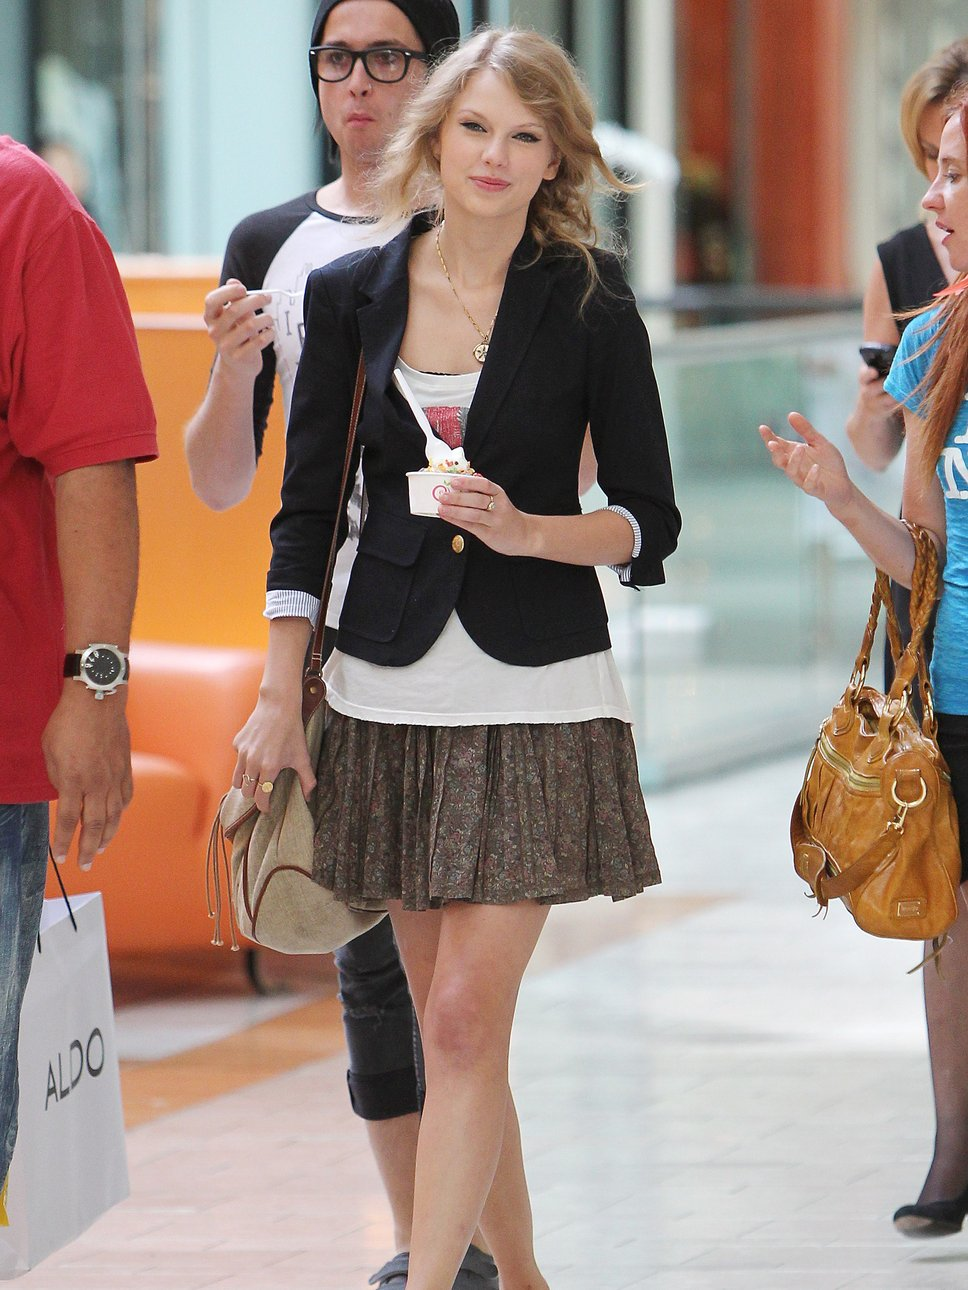 2012 Pleated Skirt - Taylor Swift